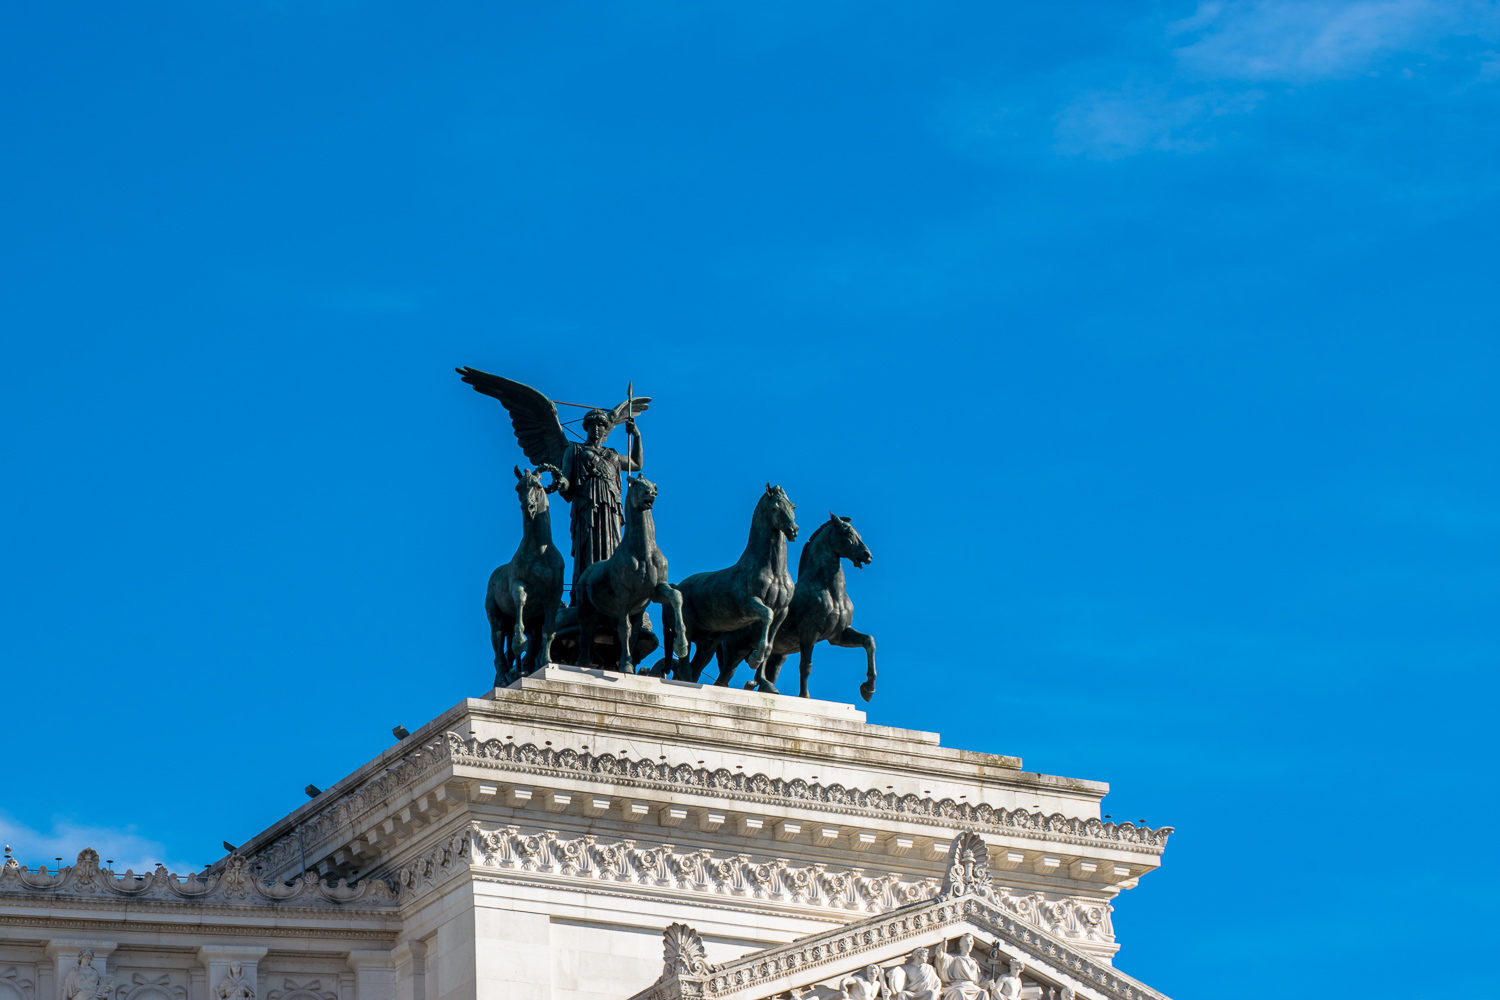 Altare della Patria or Altar of the Fatherland